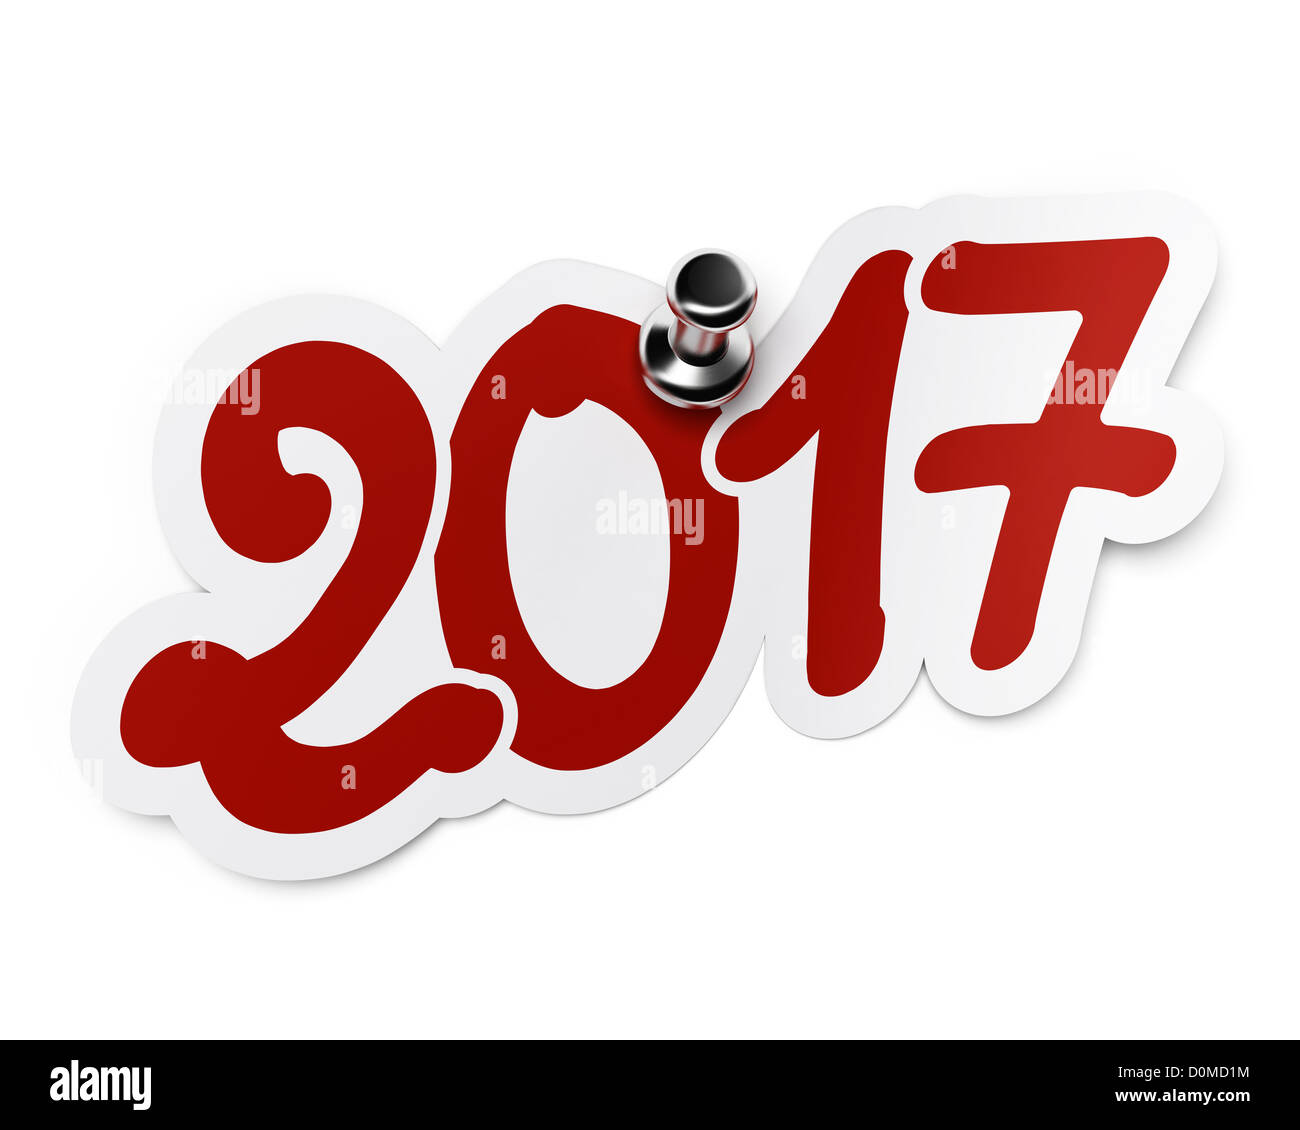 2017 (two thousand seventeen) red sticker fixed onto a white background by using a thumbtack. - Stock Image